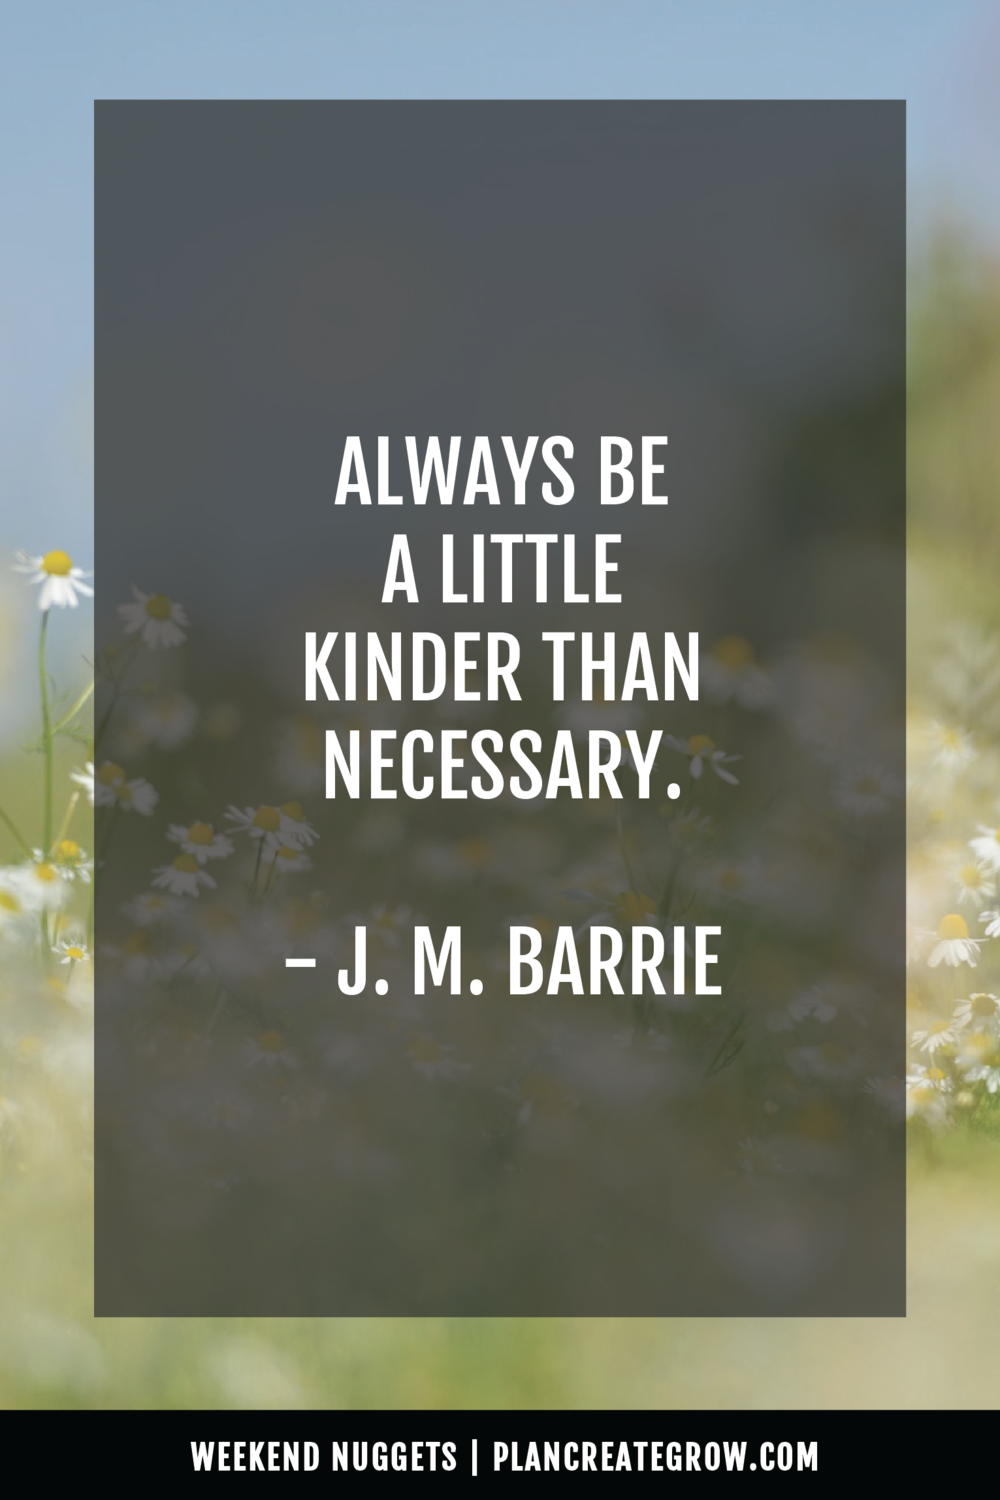 """Always be a little kinder than necessary."" - J. M. Barrie  This image forms part of a series called Weekend Nuggets - a collection of quotes and ideas curated to delight and inspire - shared each weekend. For more, visit plancreategrow.com/weekend-nuggets."